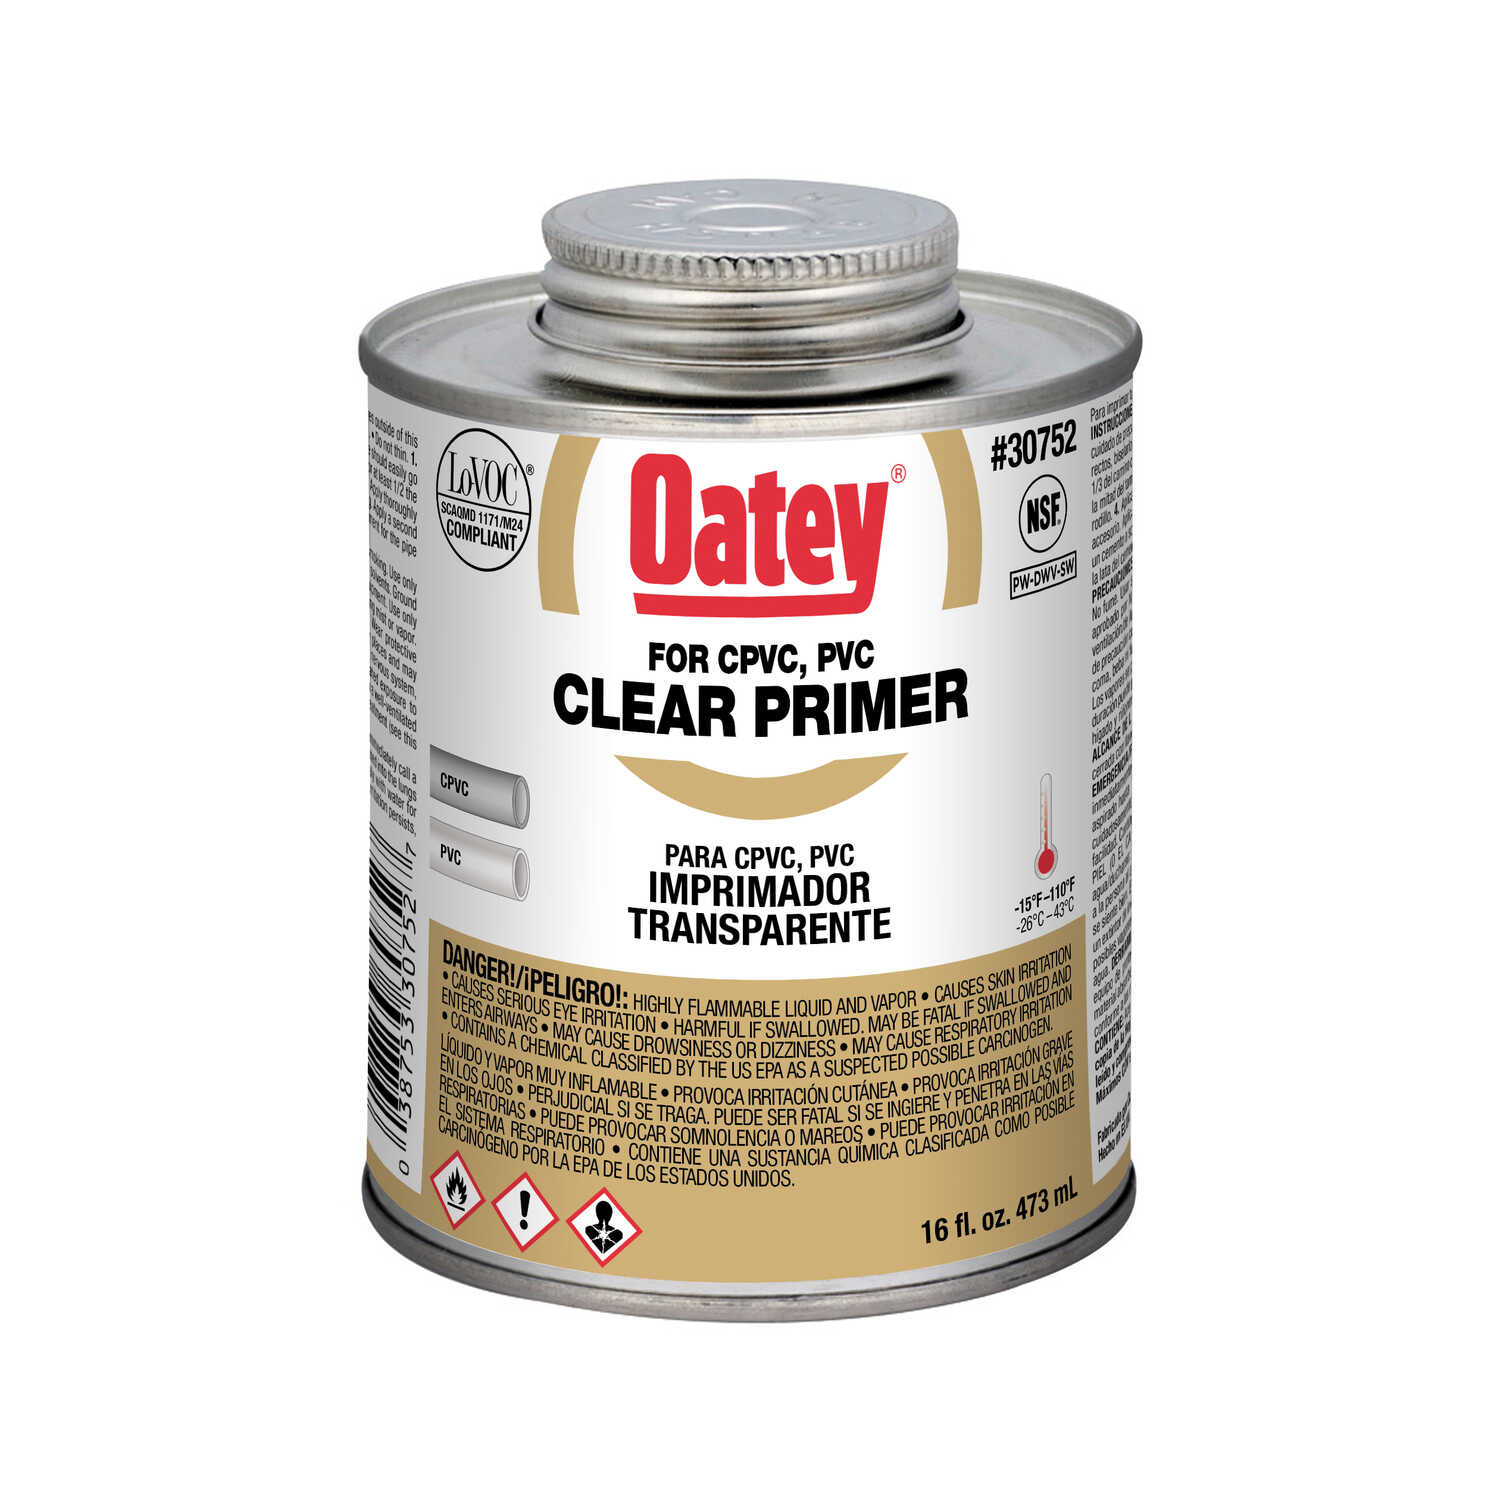 Oatey  Primer and Cement  For CPVC/PVC 16 oz. Clear